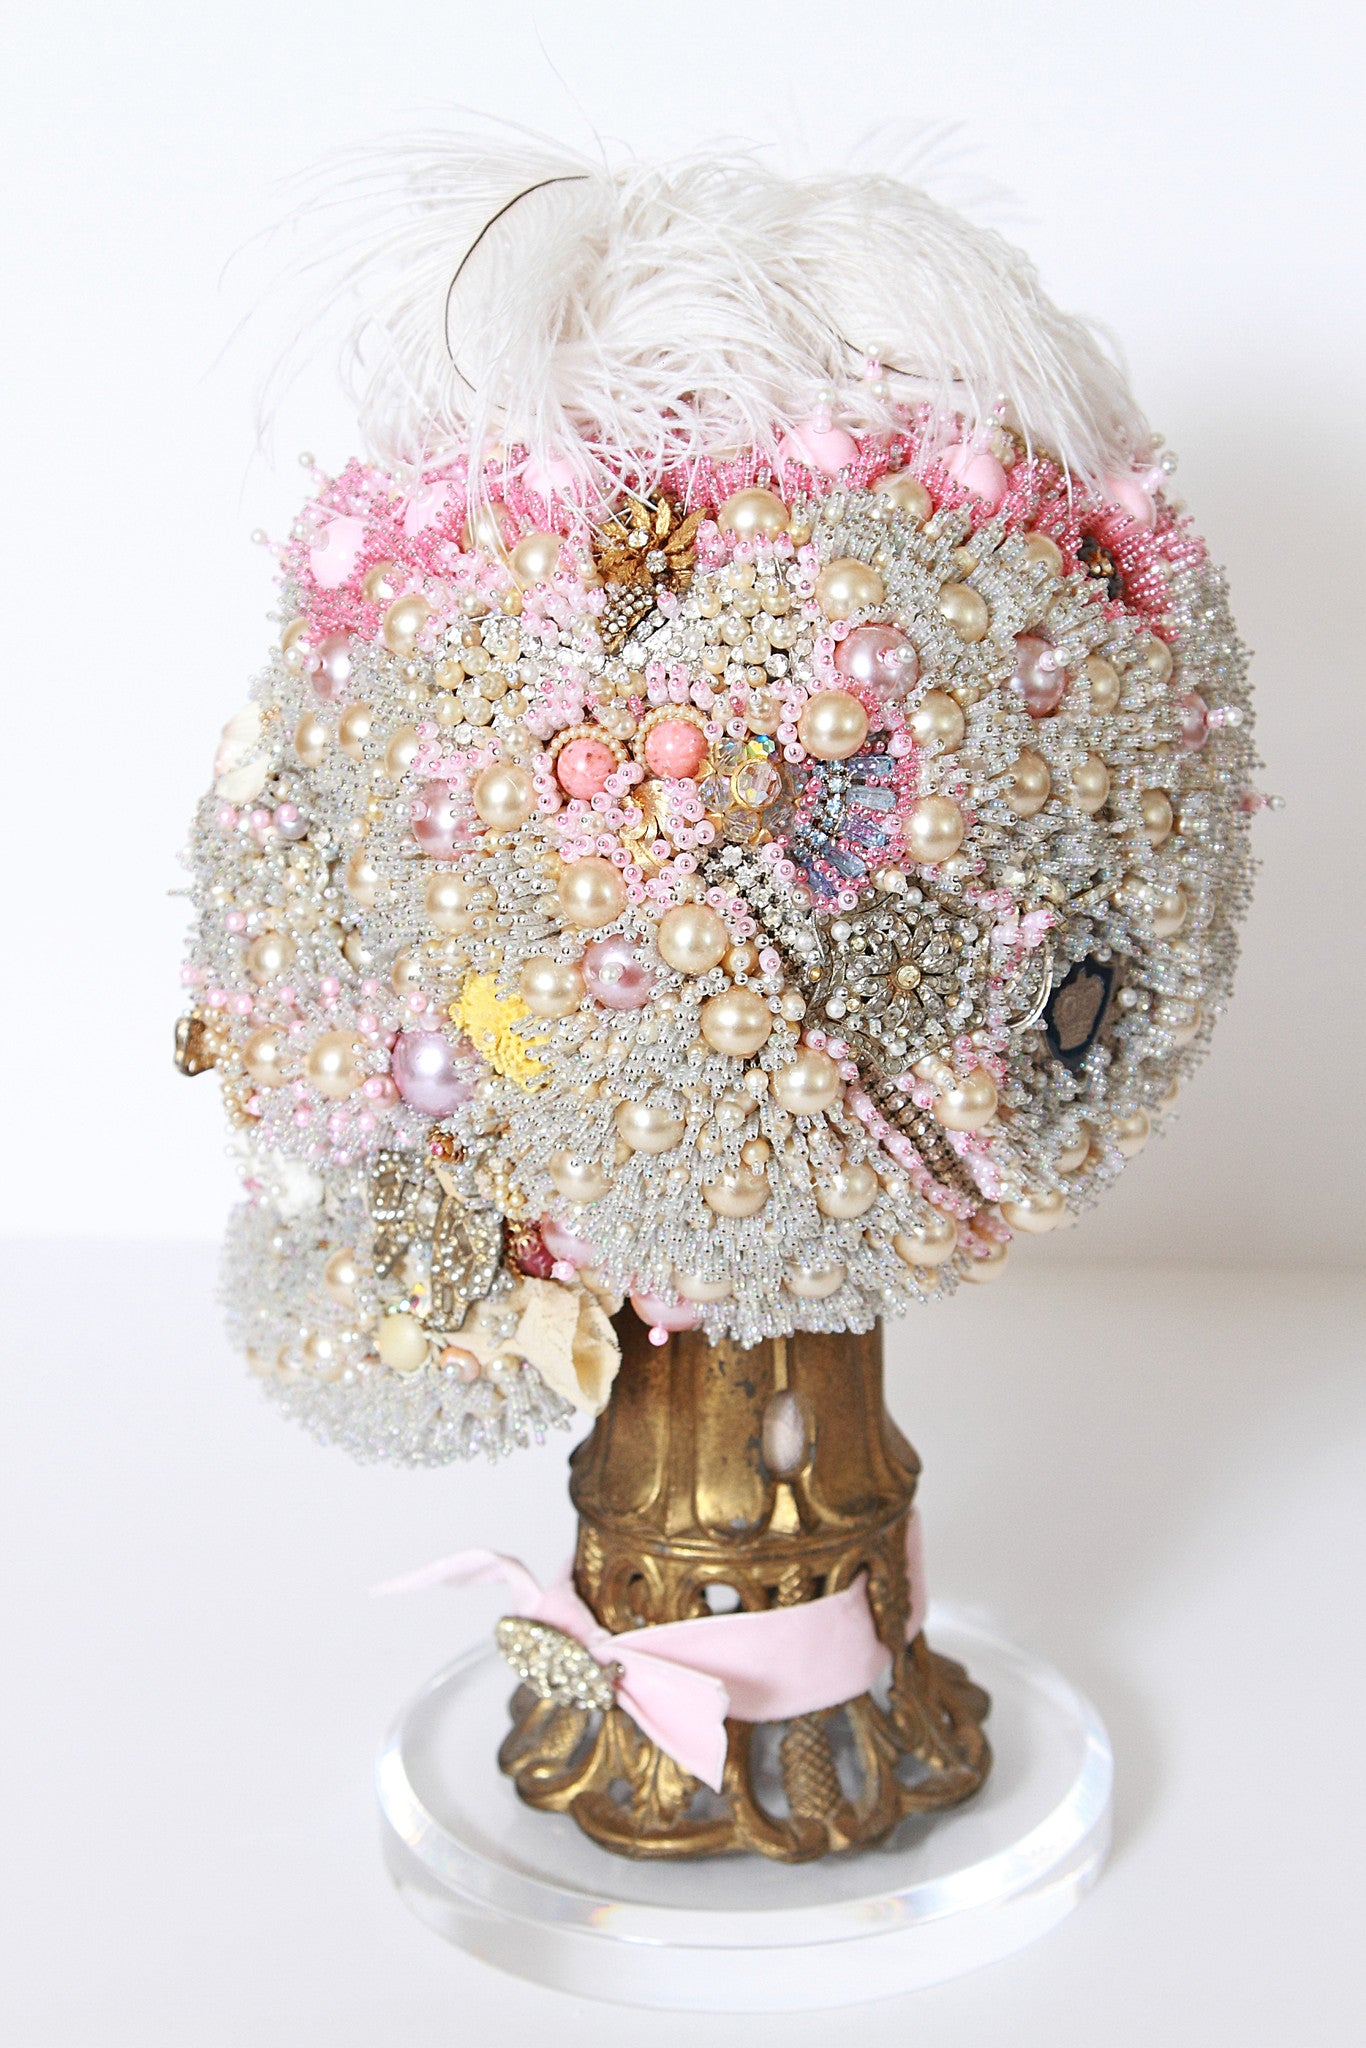 La Tête de Marie Antoinette Beaded Sculpture